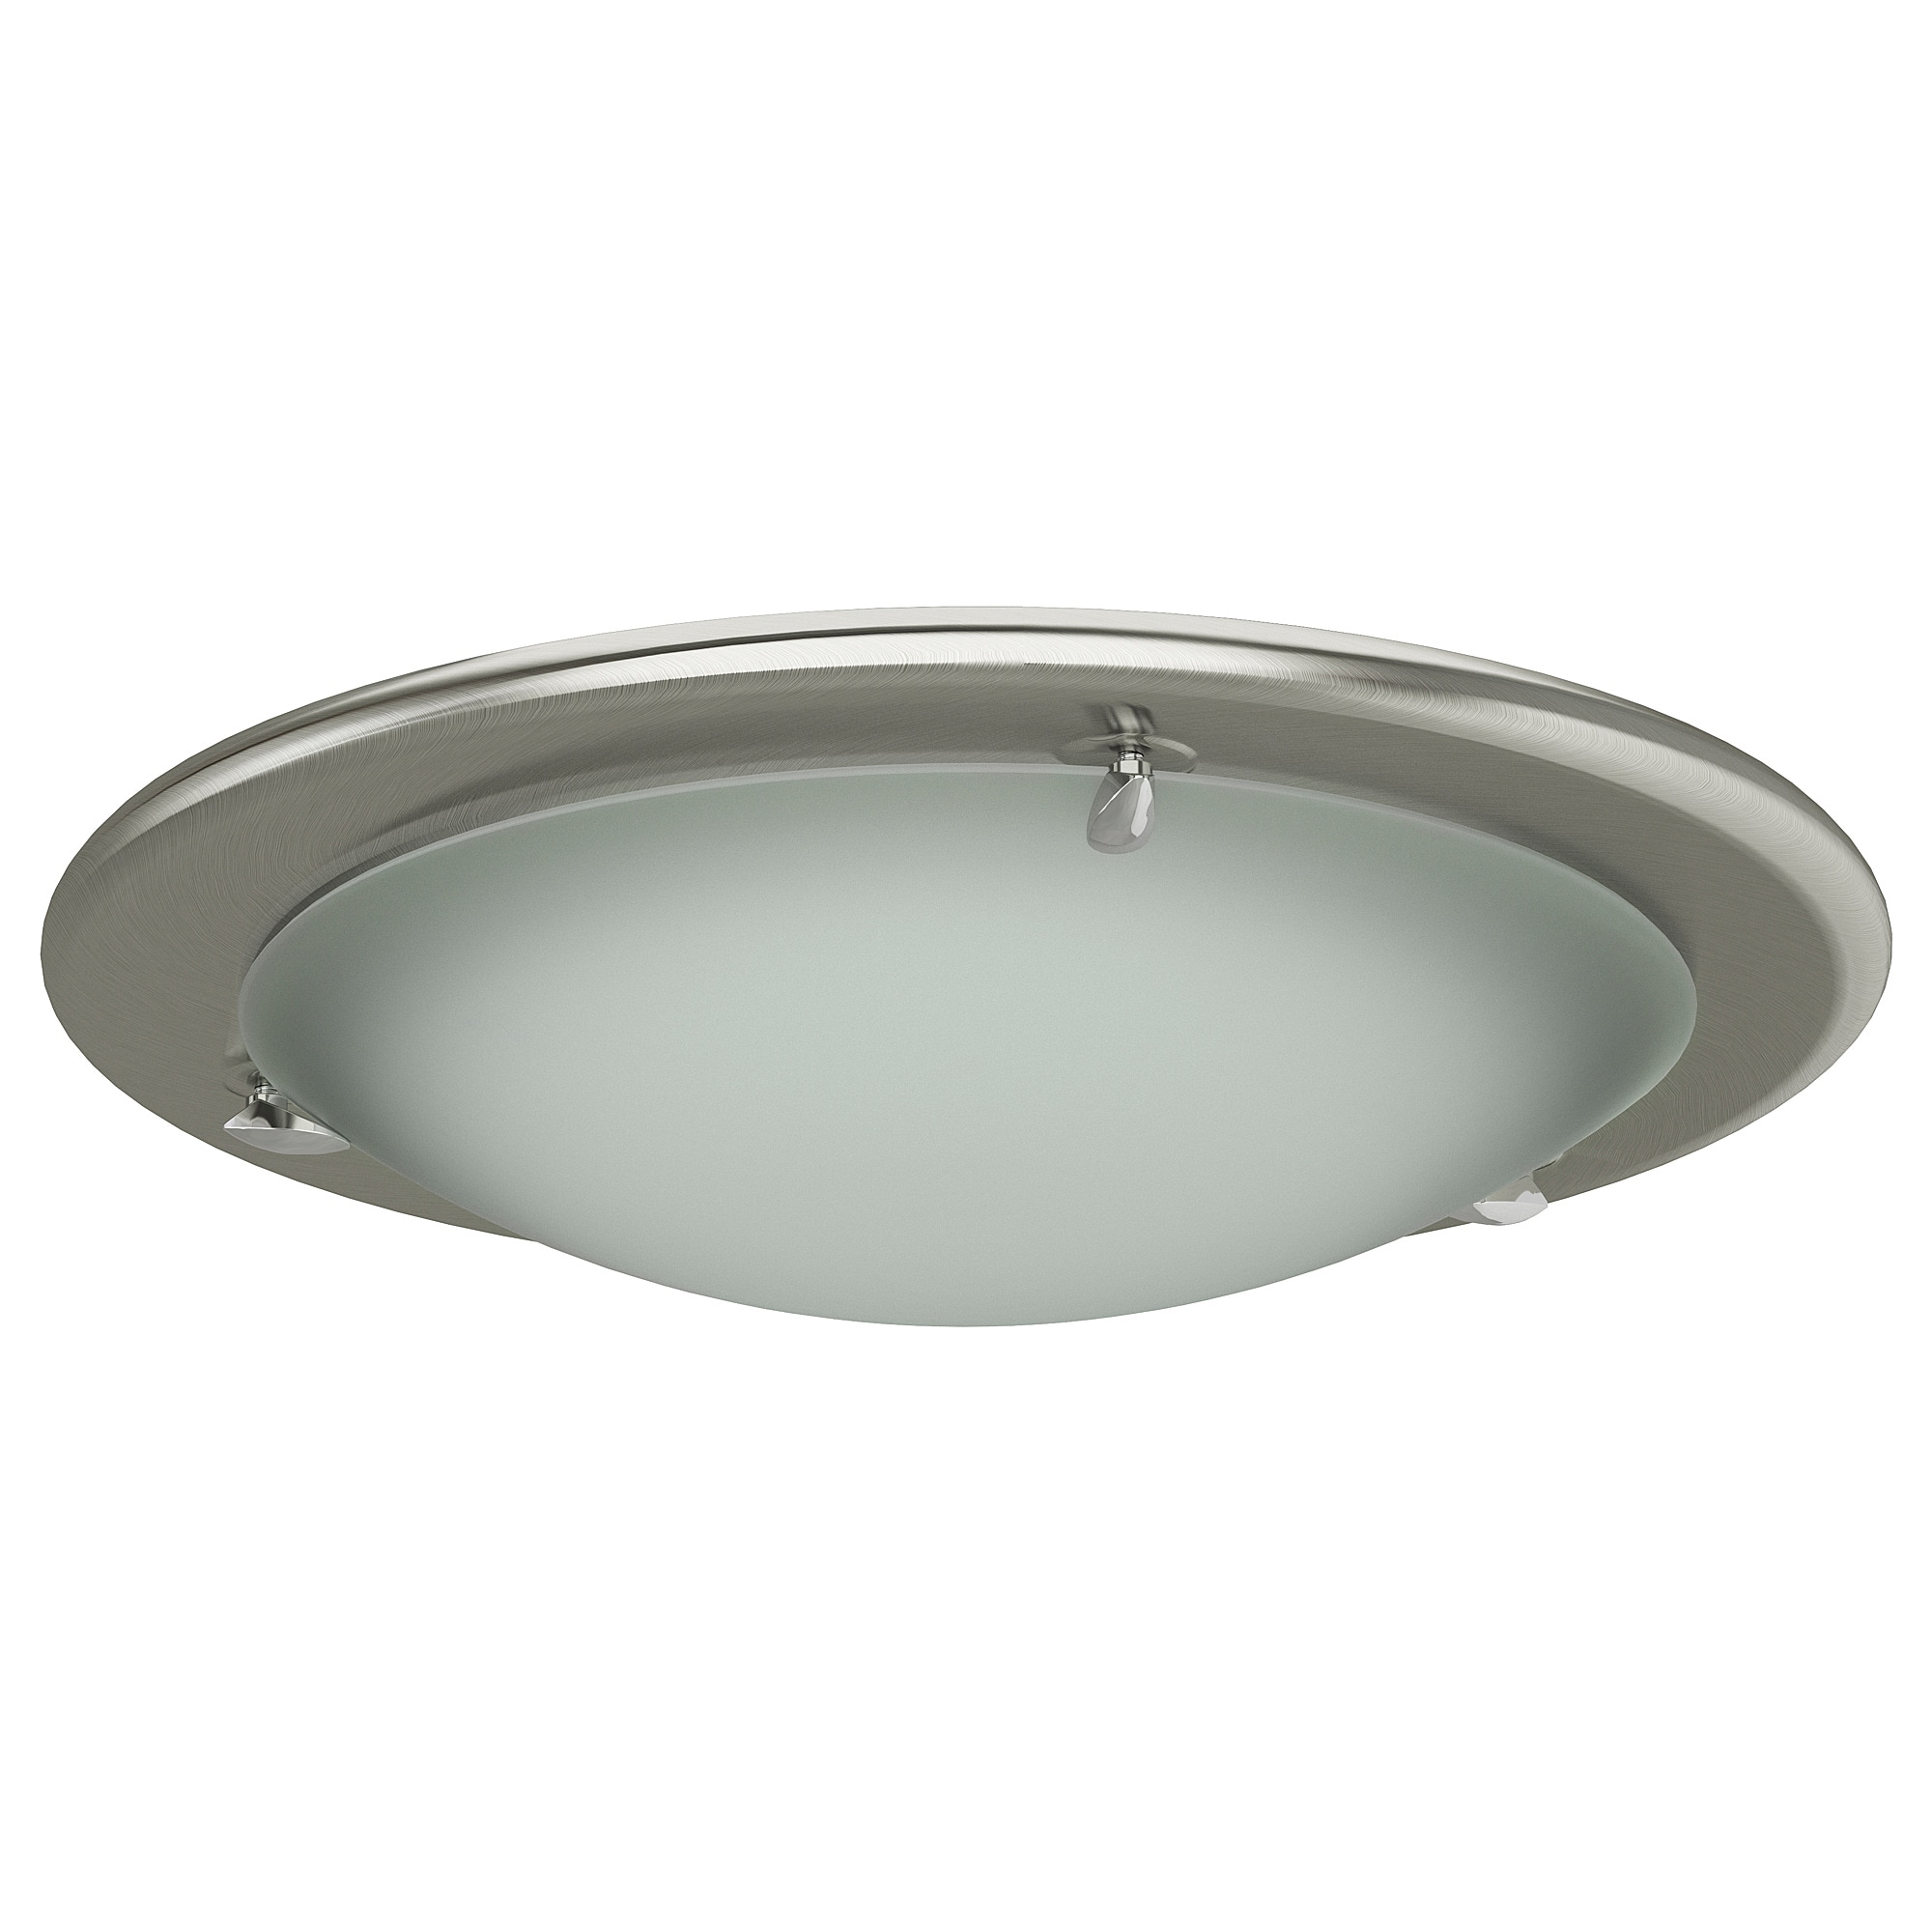 Pult ceiling lamp ikea inter ikea systems bv 1999 2017 privacy policy arubaitofo Image collections